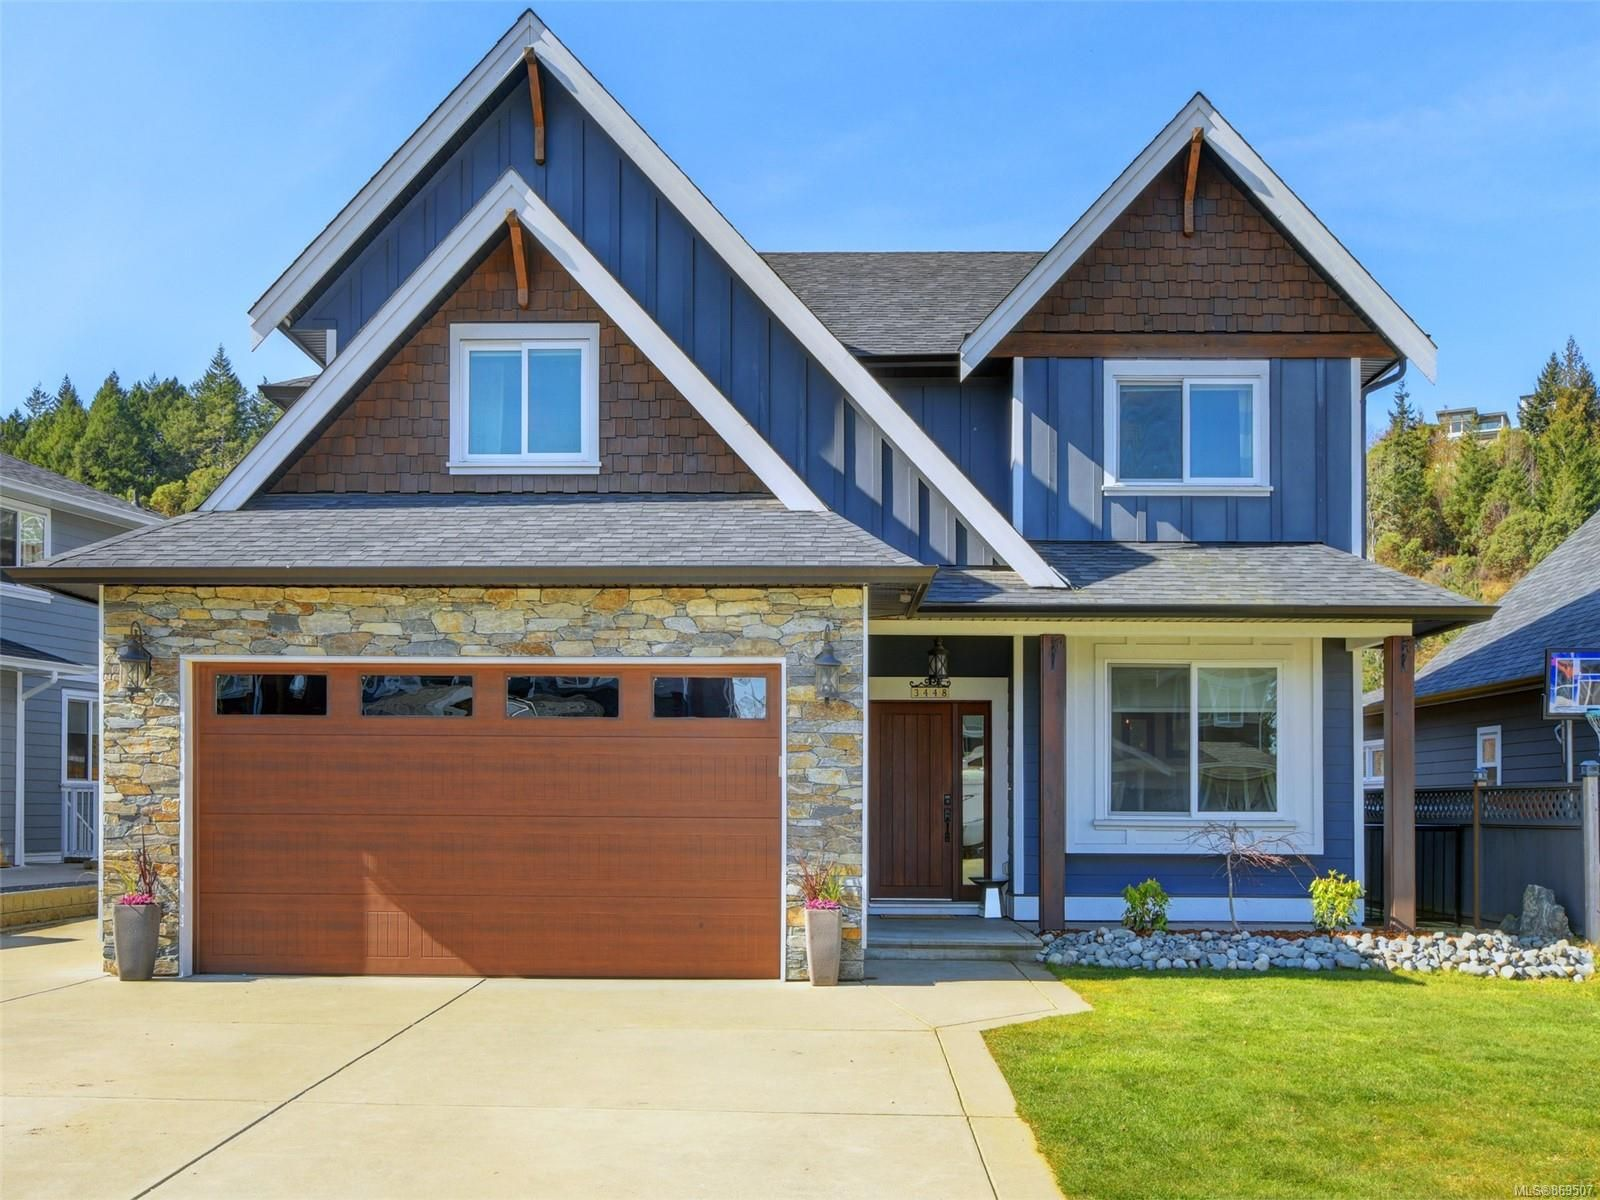 Main Photo: 3448 Hopwood Pl in : Co Latoria House for sale (Colwood)  : MLS®# 869507